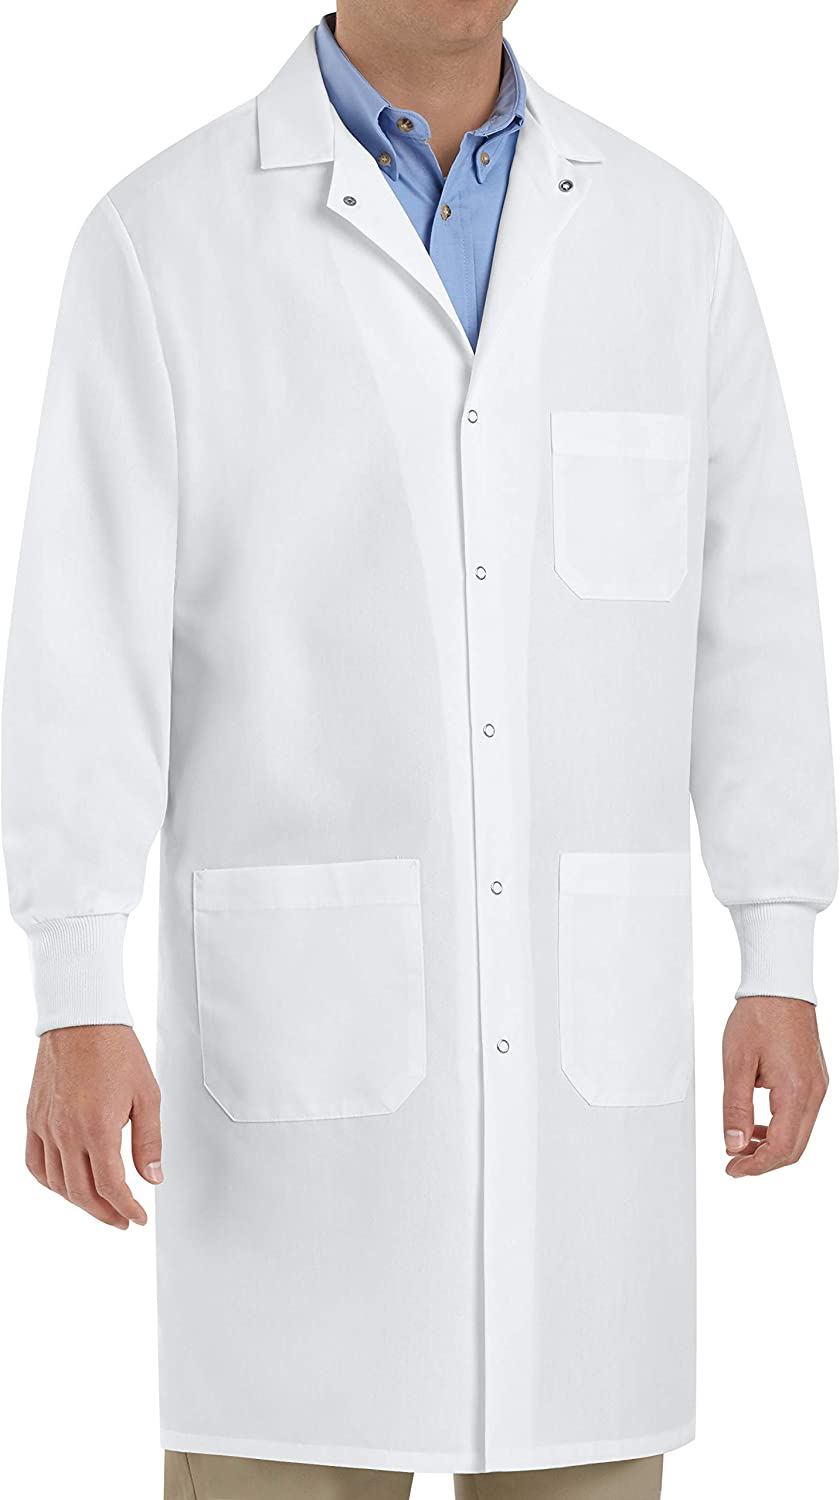 Red Kap Unisex Specialized Cuffed Lab Coat with 3 Front Pockets: Clothing